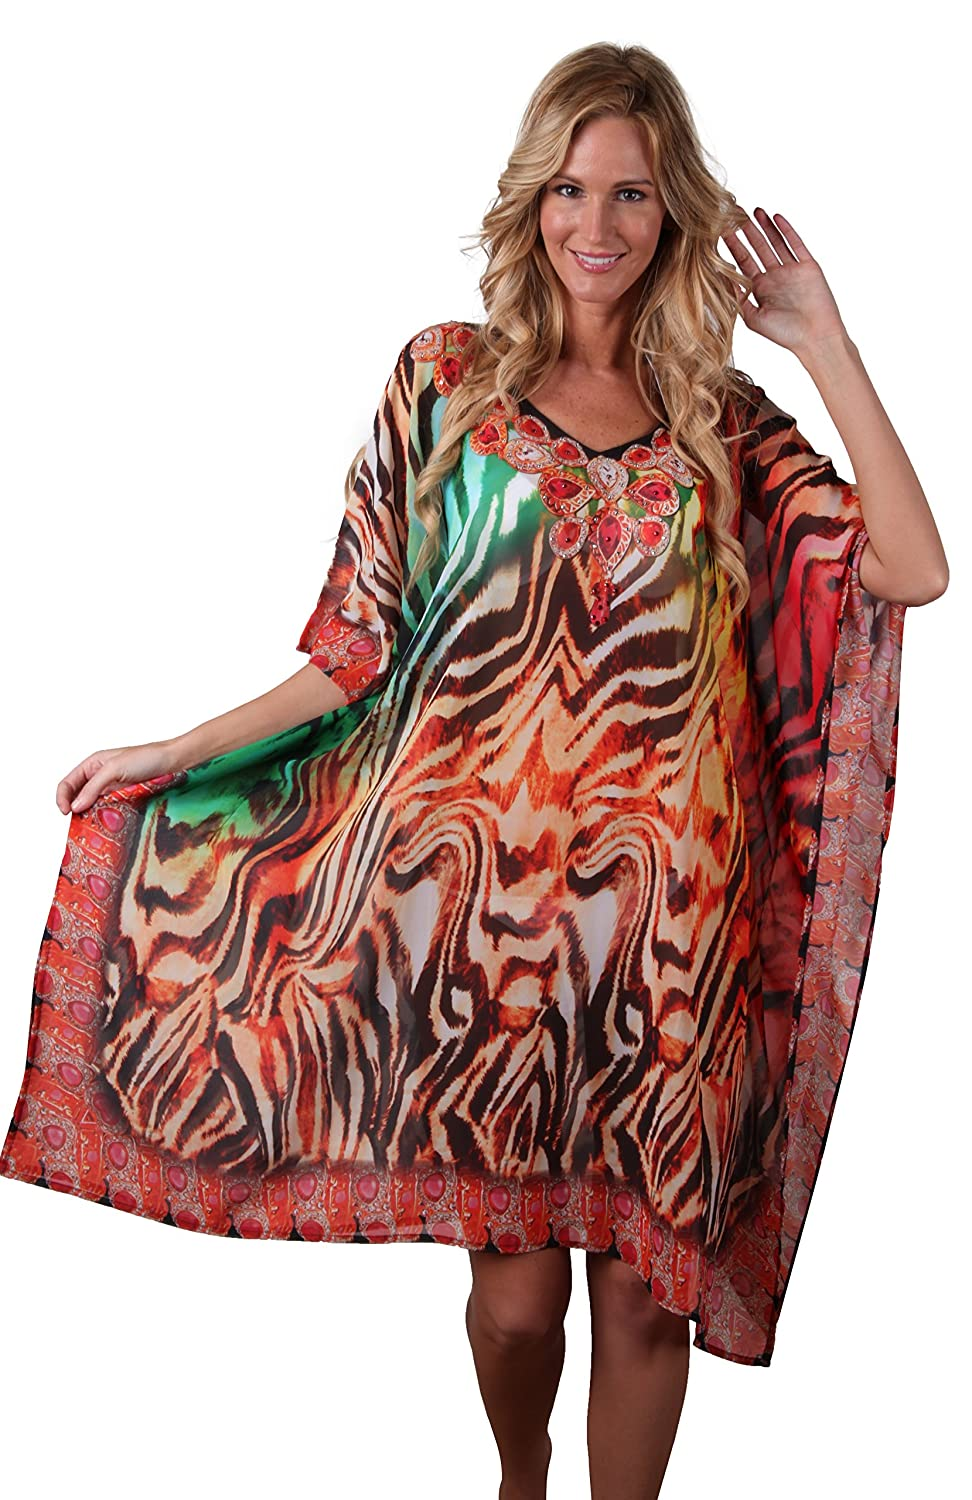 In Gear Women's Ingear Drawstring Tunic Cover Up COL#2) IDG470-2-COL#2-OS